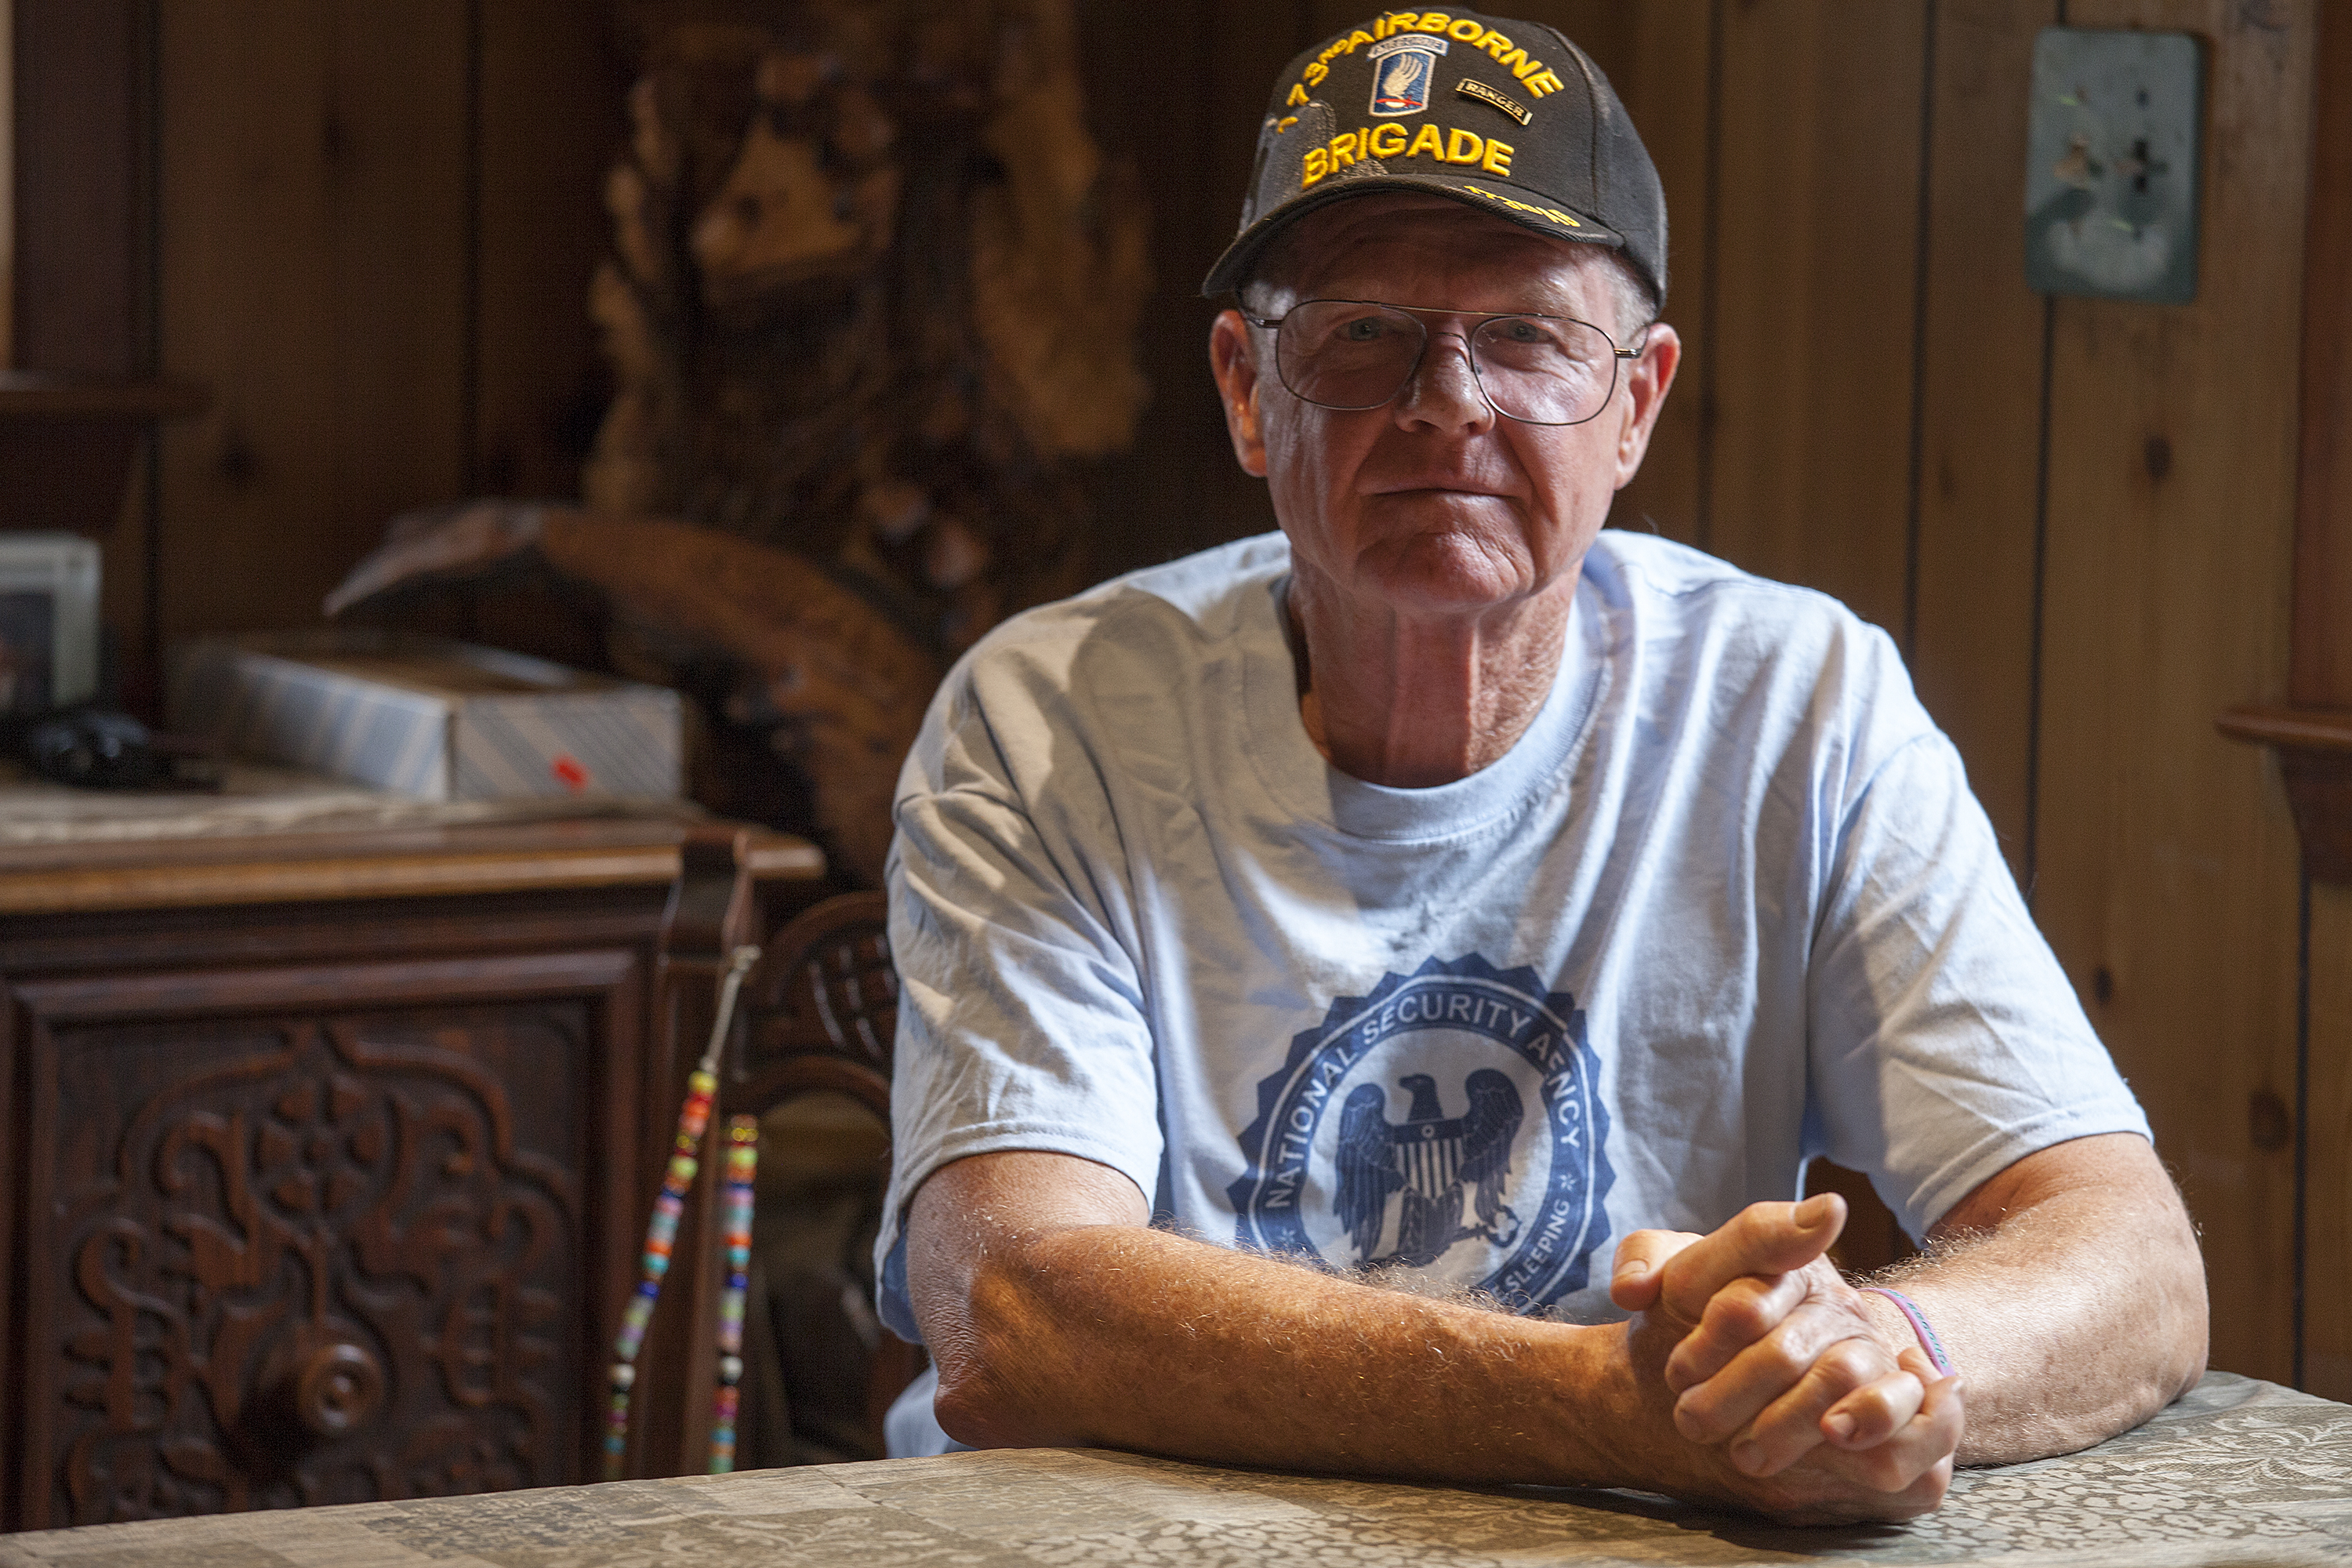 John Suter sits in his dining room in Chugiak. His appeal with the Ombudsman's Office has been ongoing for more than a decade. (Photo by Rashah McChesney/ KTOO)